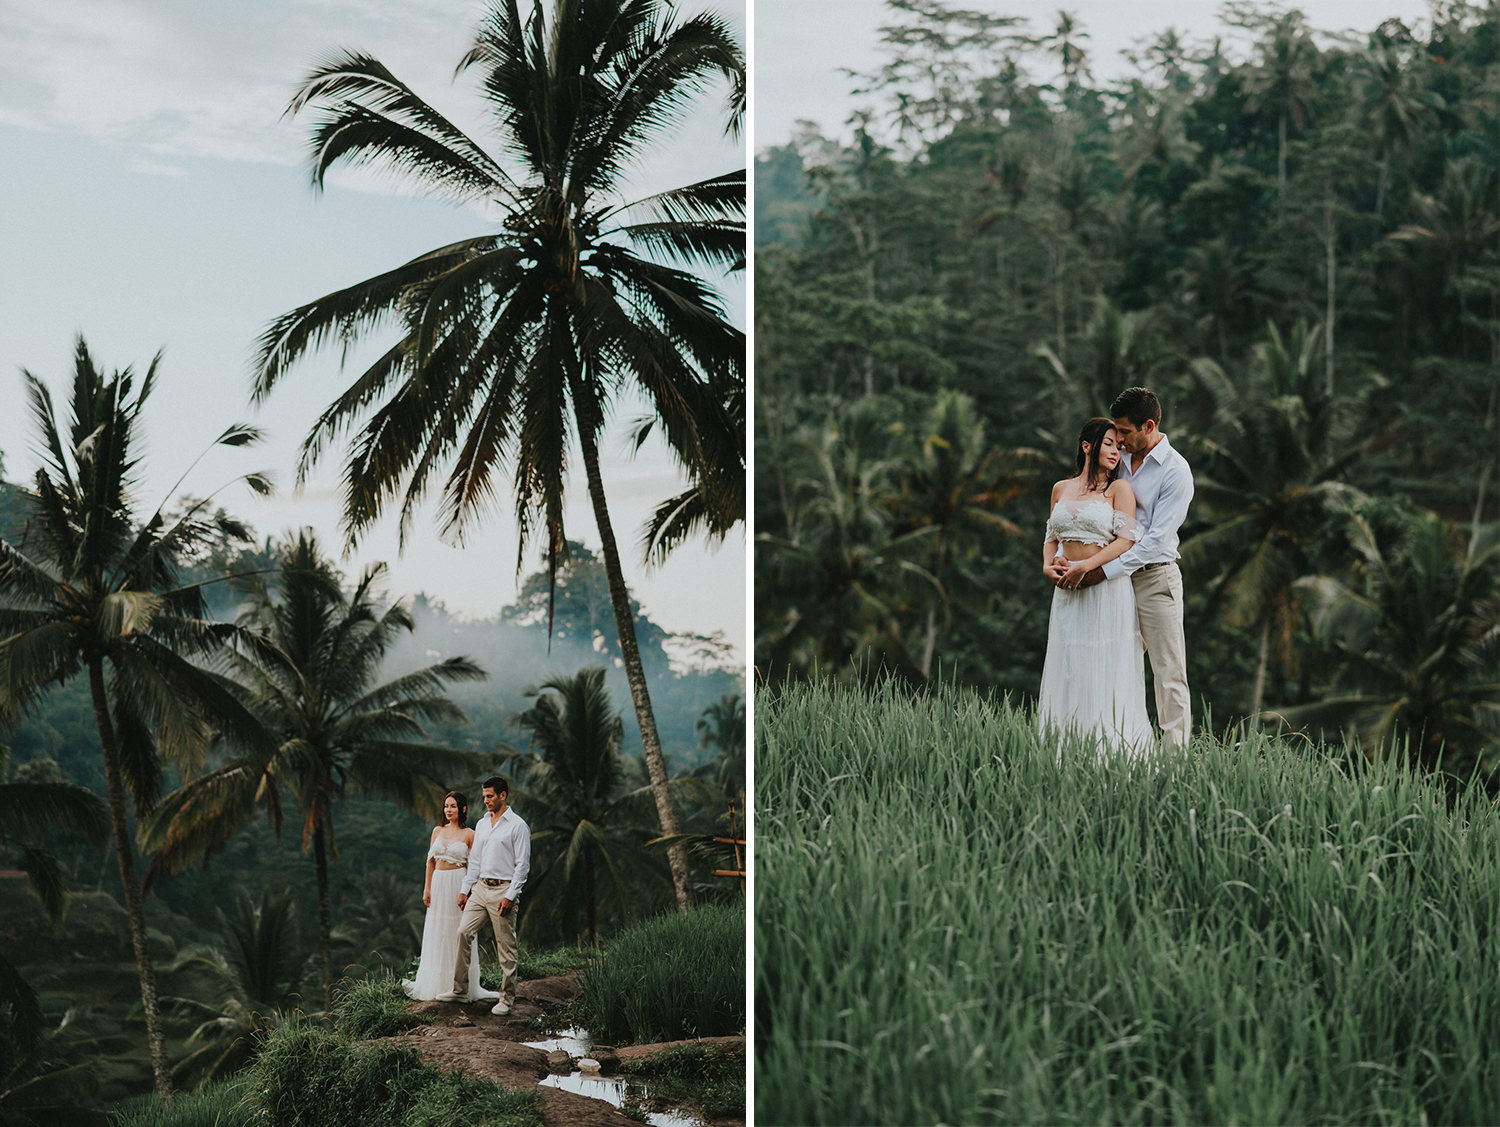 bali wedding - elopement - ubud wedding - diktatphotography - olga + Jason - 4